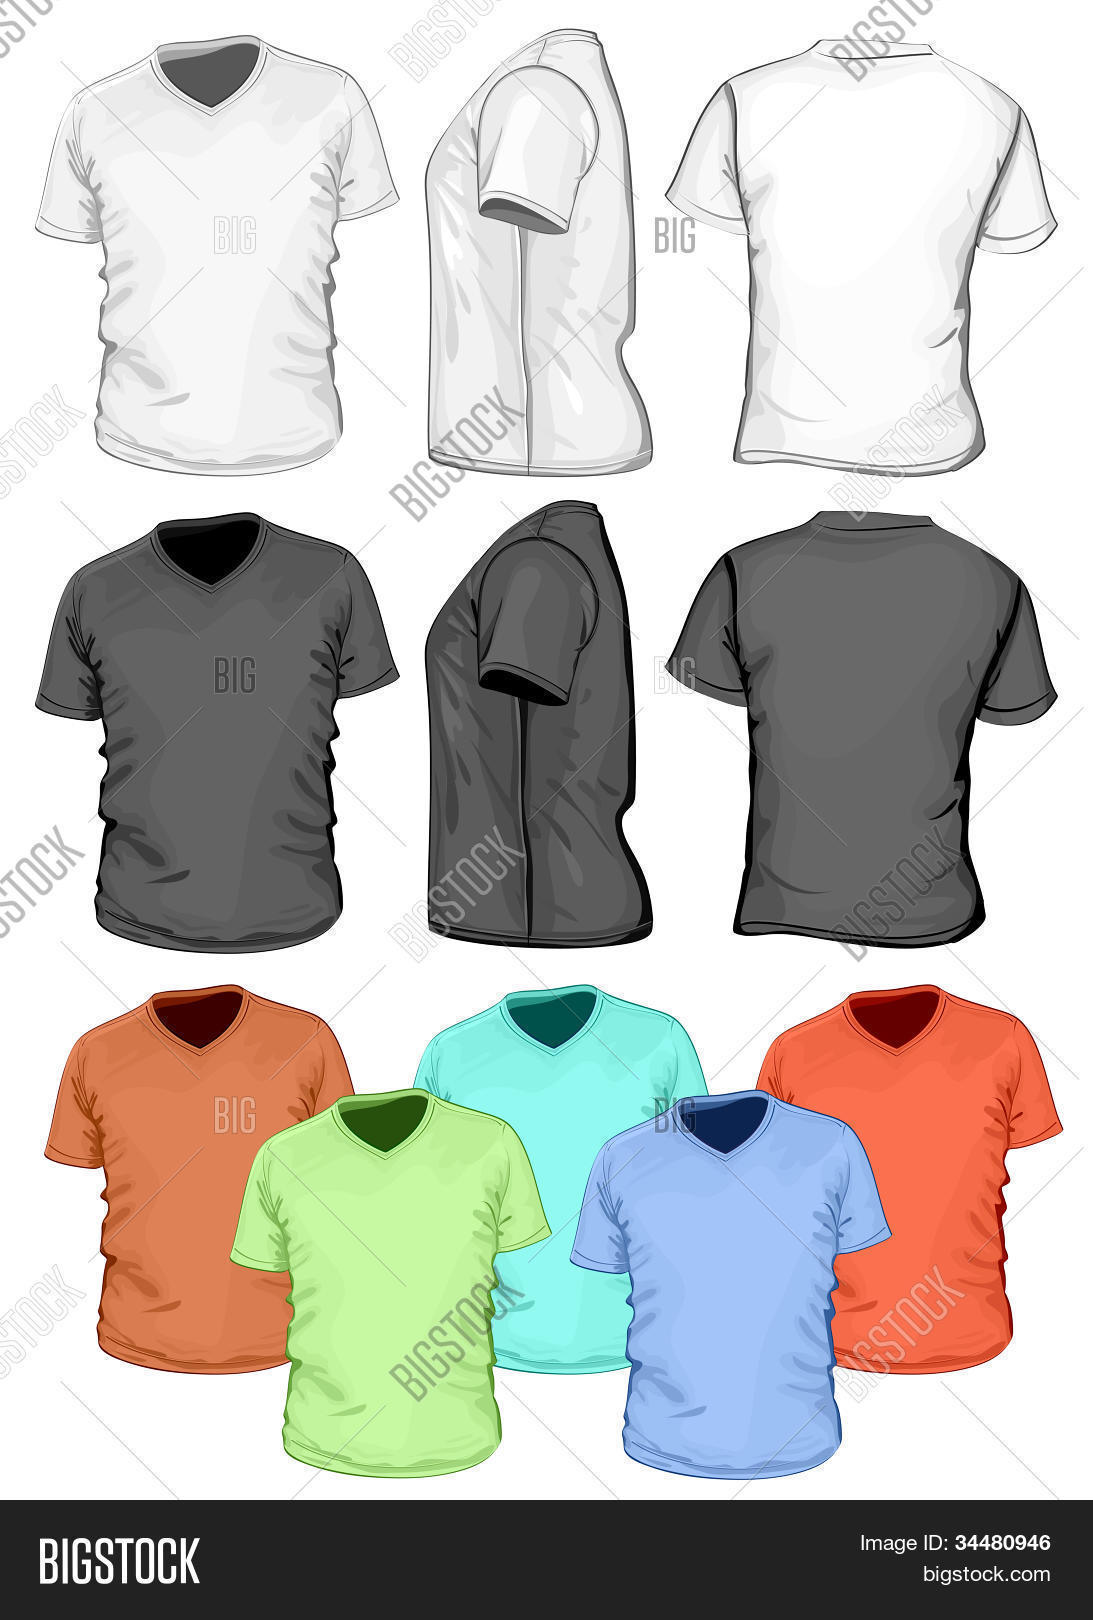 Shirt design back side